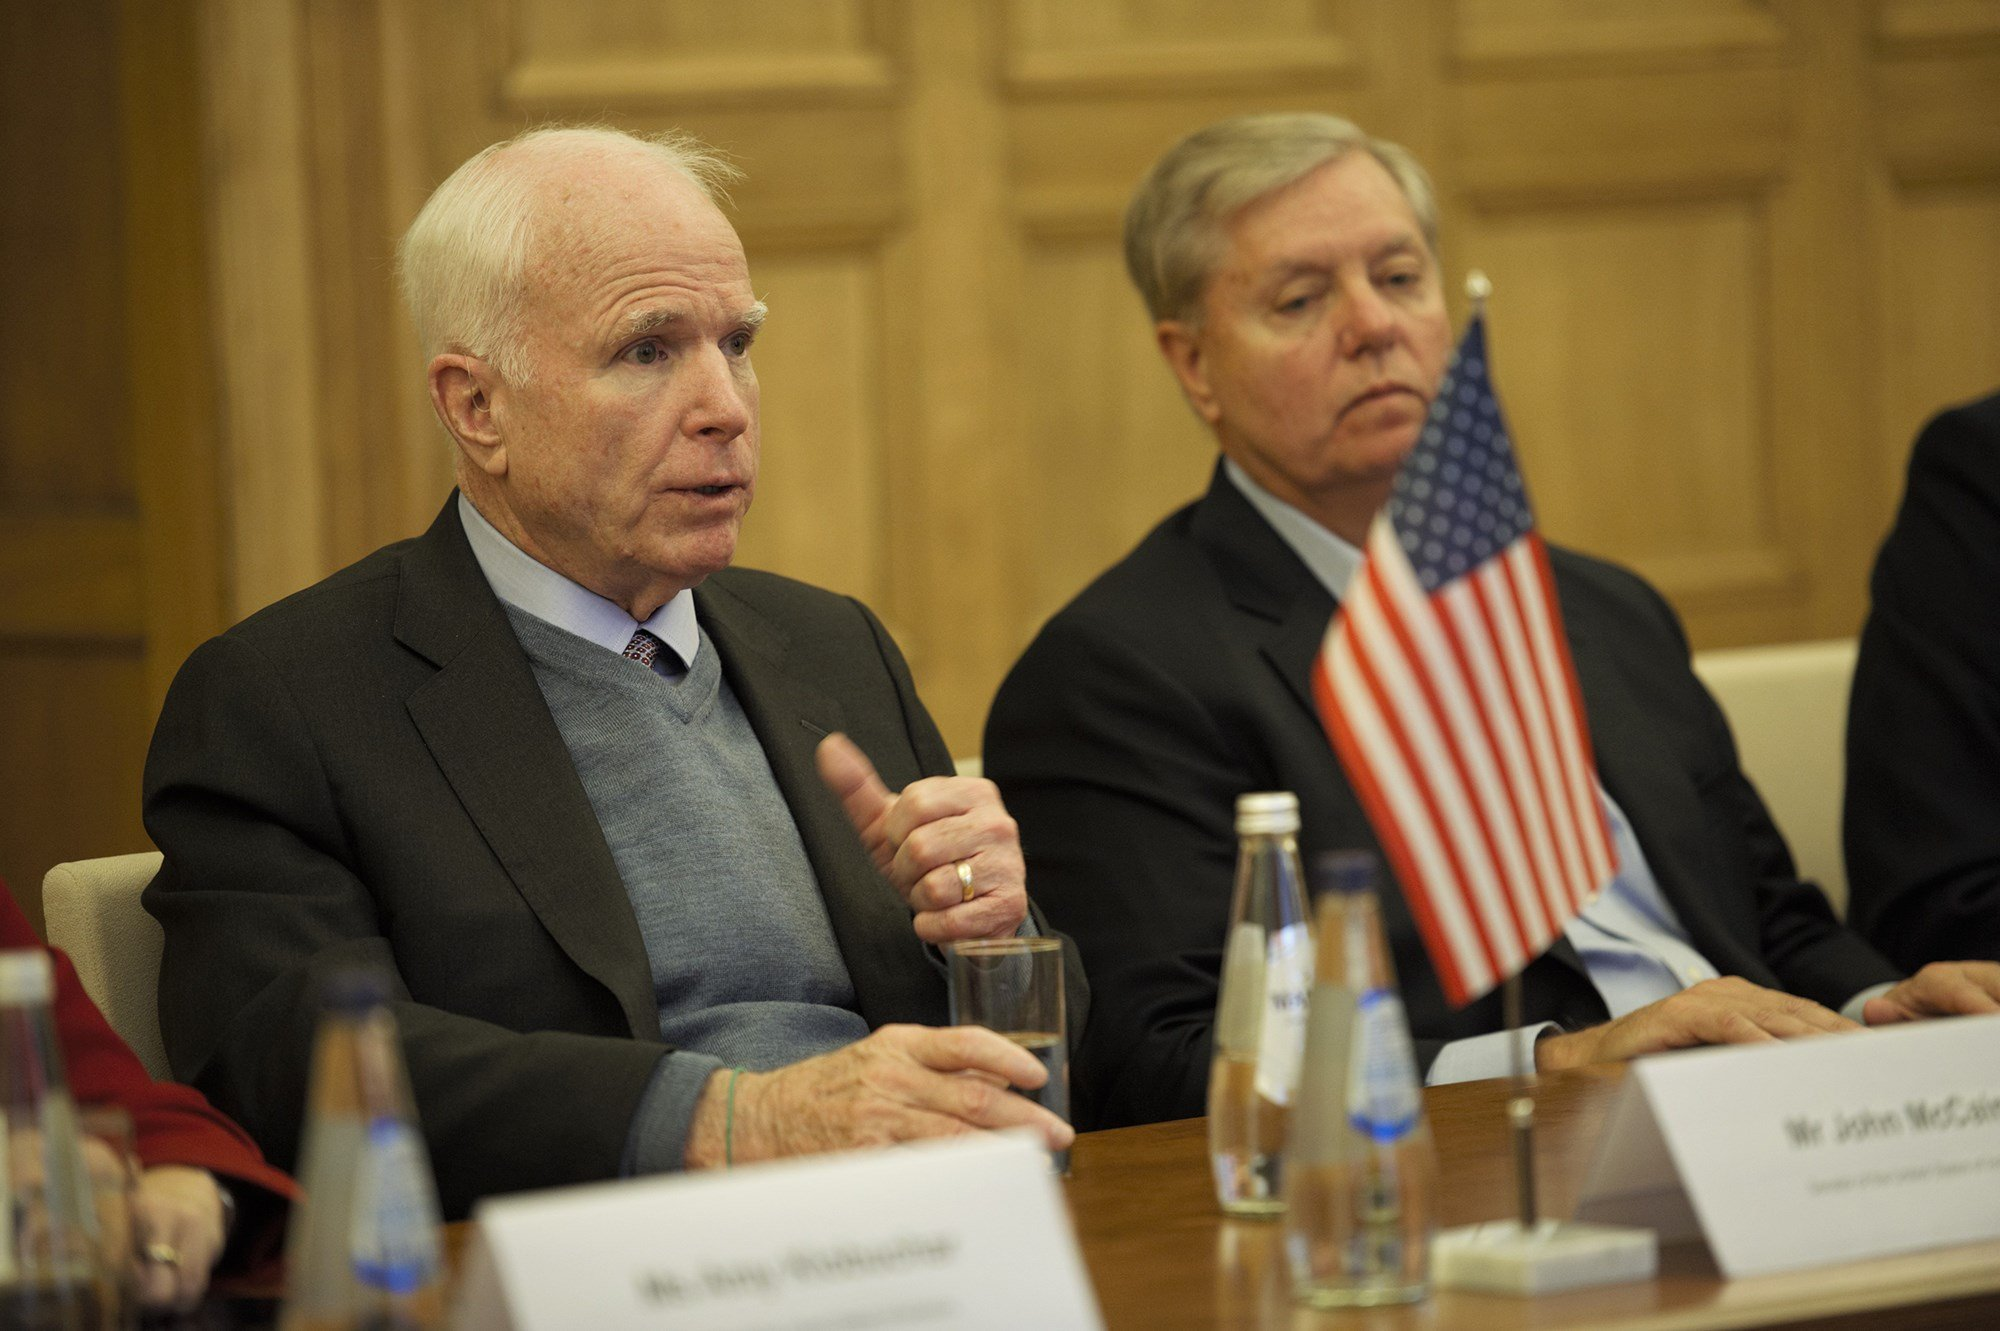 Sen. John McCain, R-Arizona, left, and Sen. Lindsey Graham, R-South Carolina, during a December visit to Latvia. The two men, frequent critics of President Donald Trump, were hosted by the president at a private White House dinner Monday. (Photo by Andrej